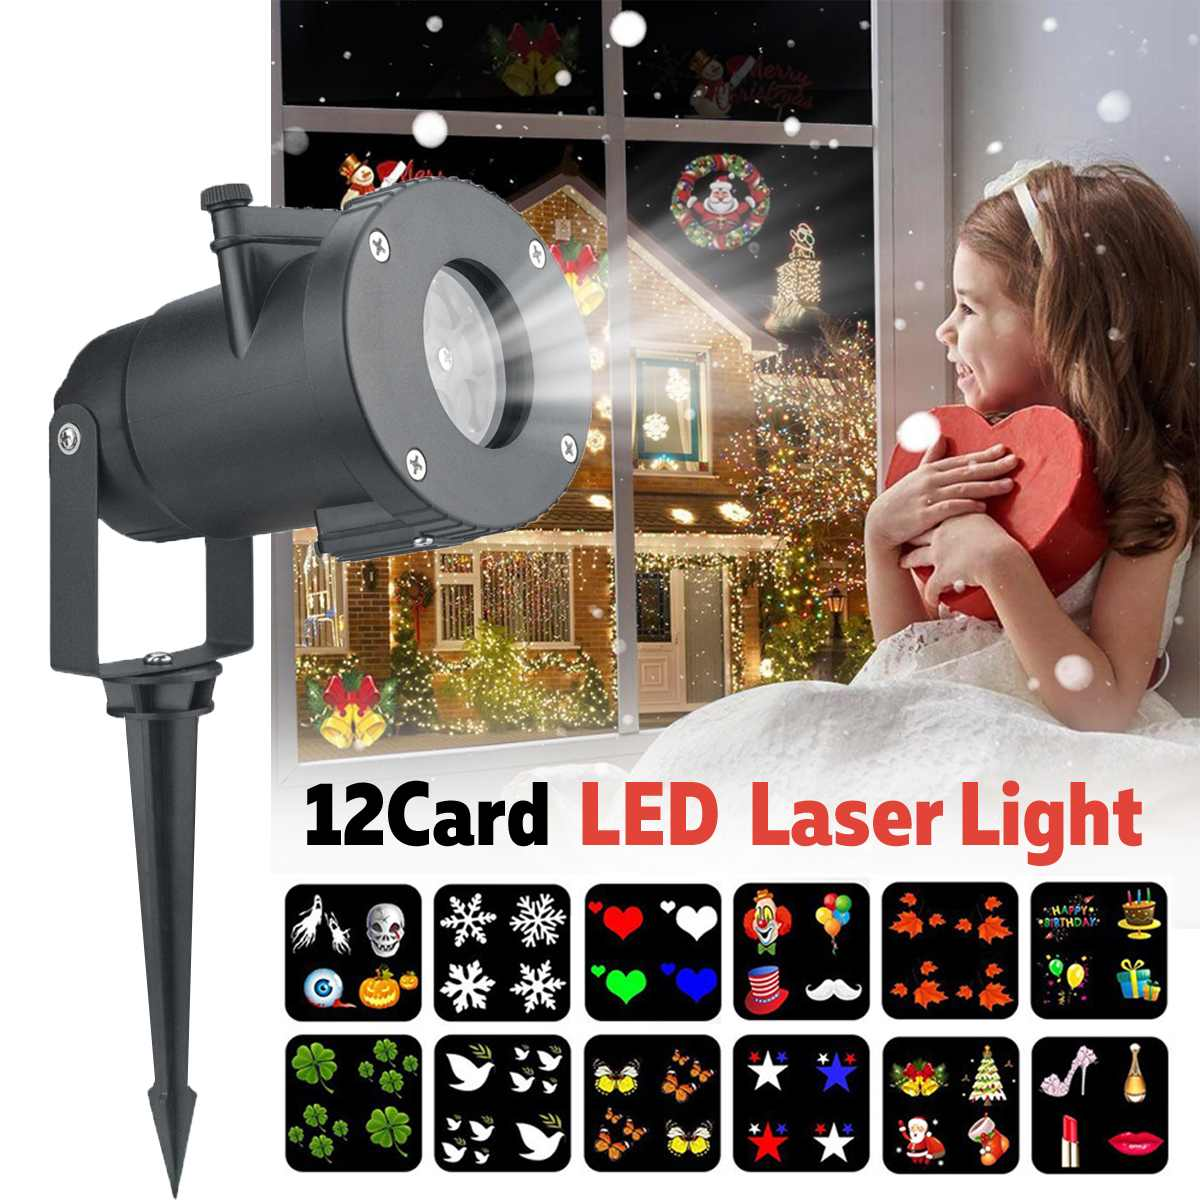 LED Mini Projector  Light Adjustable Waterproof Lamp With 12 Slide Card Christmas High Quality